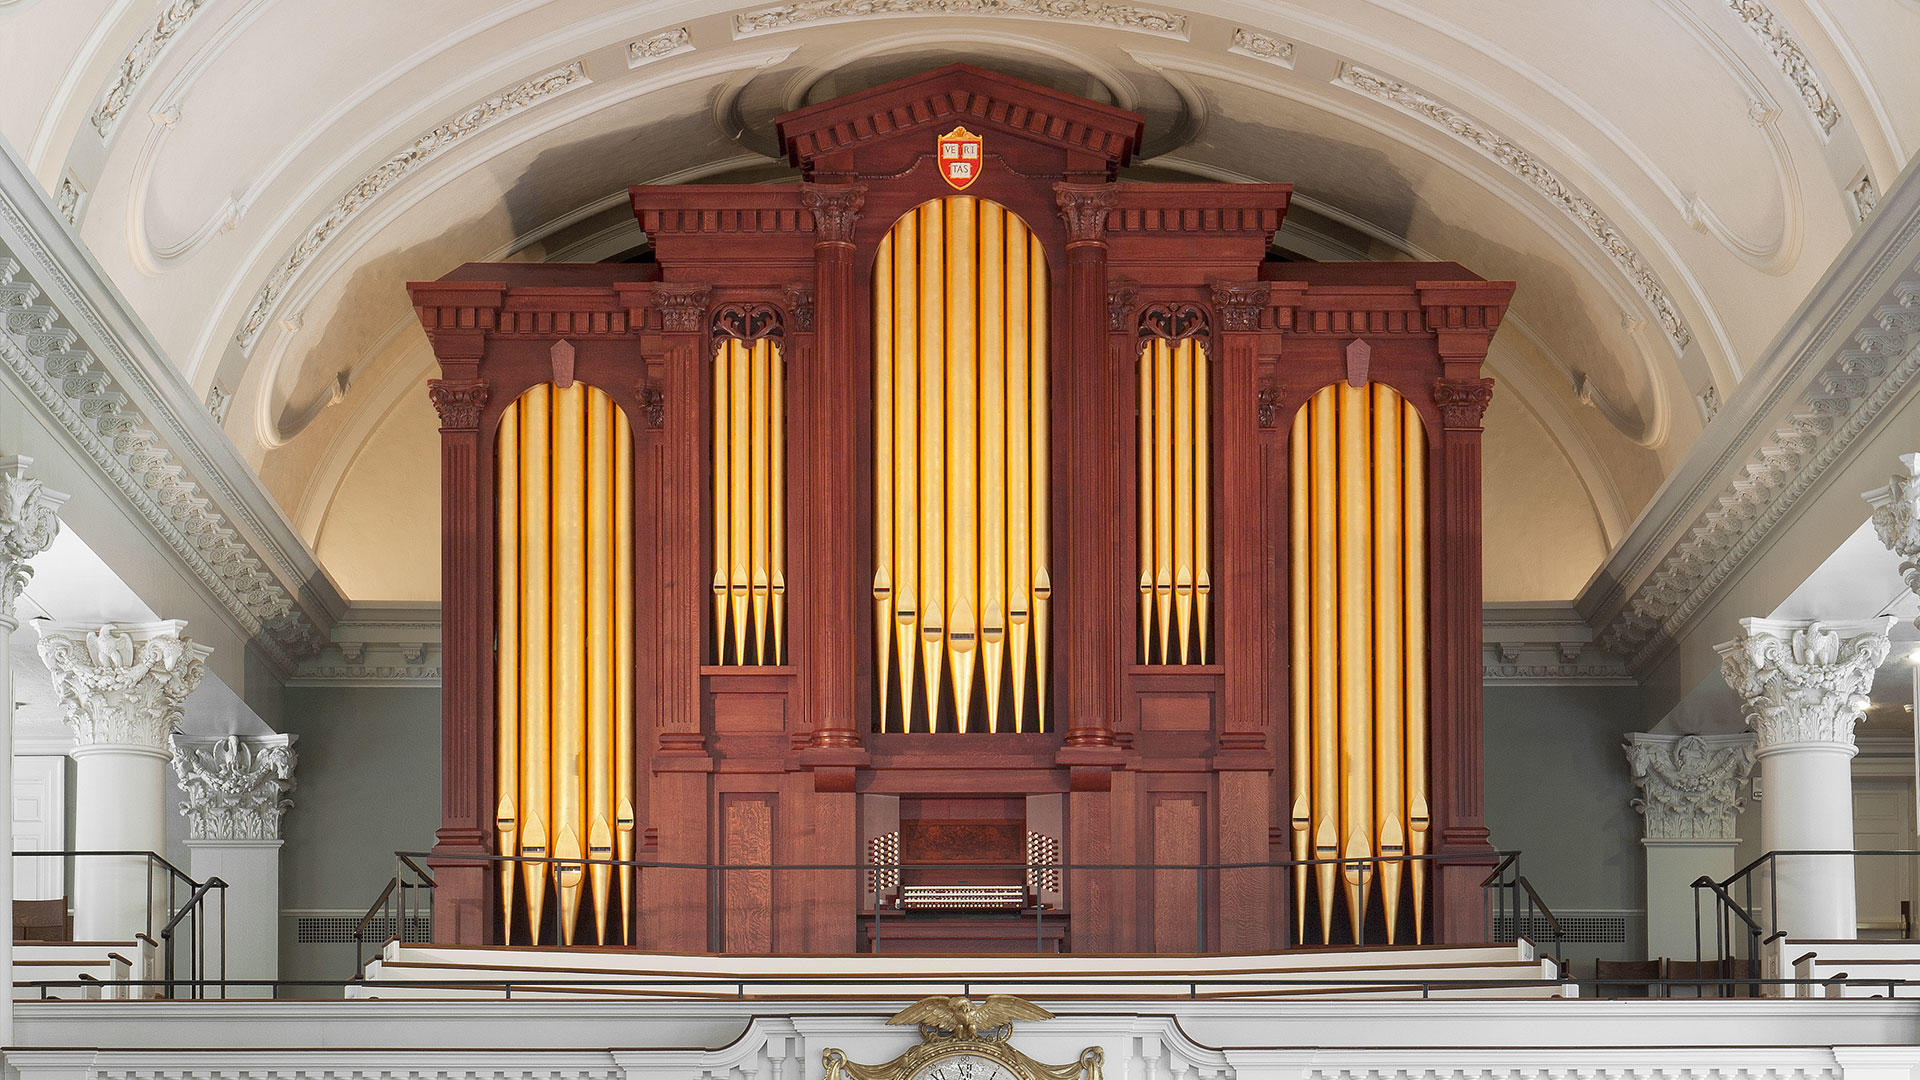 CB Fisk Organ, Op.139 in the Memorial Church